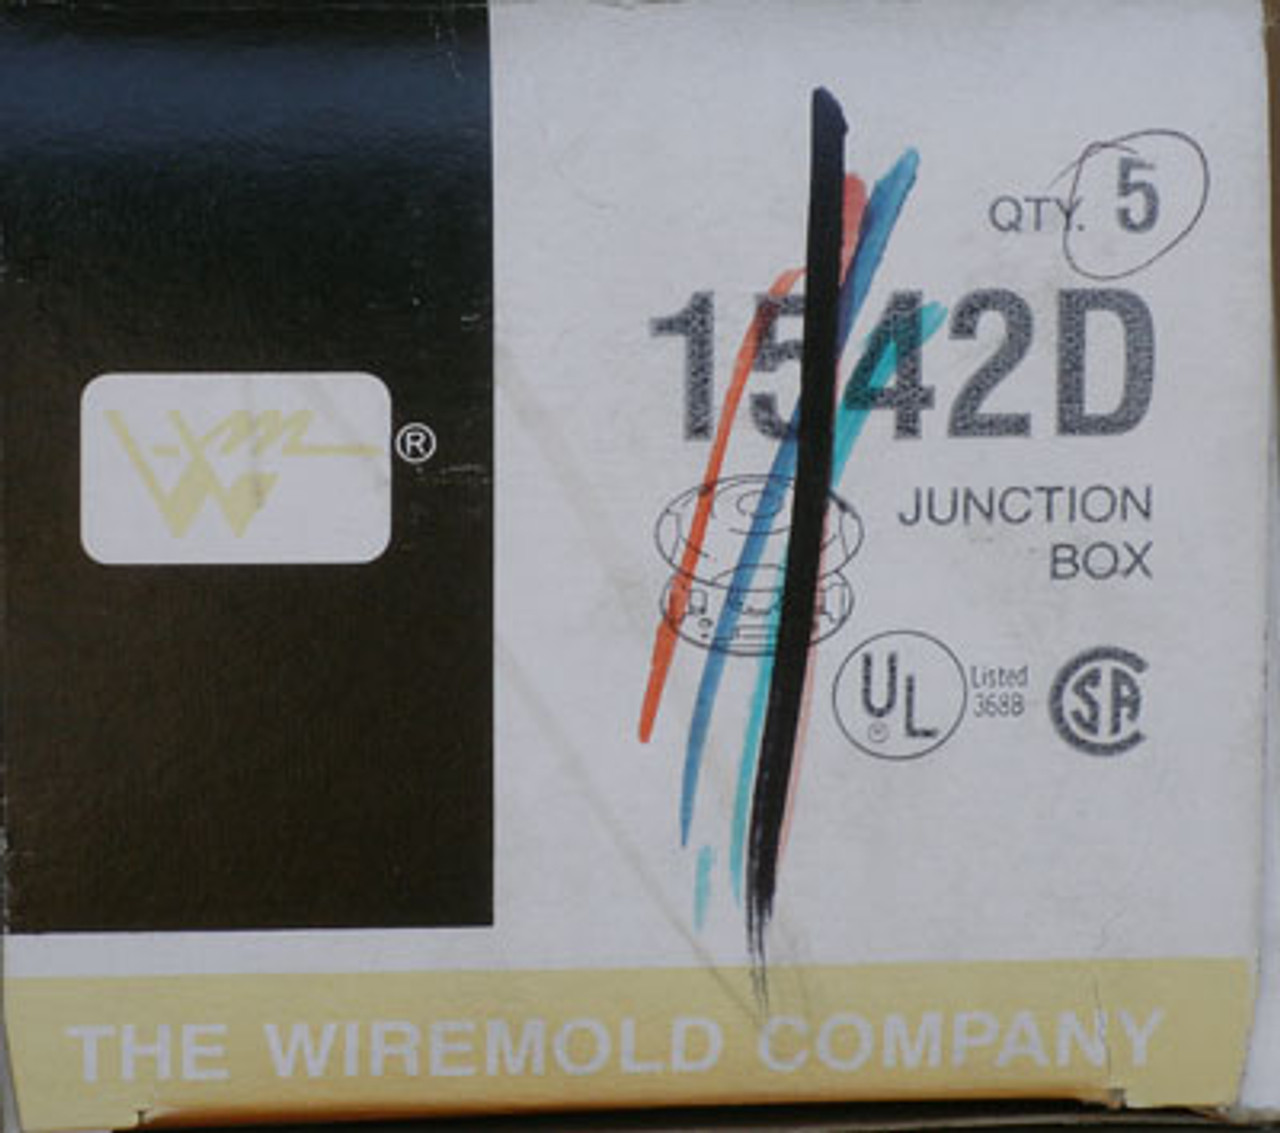 Wiremold 1542D Junction Box Qty 5 - New